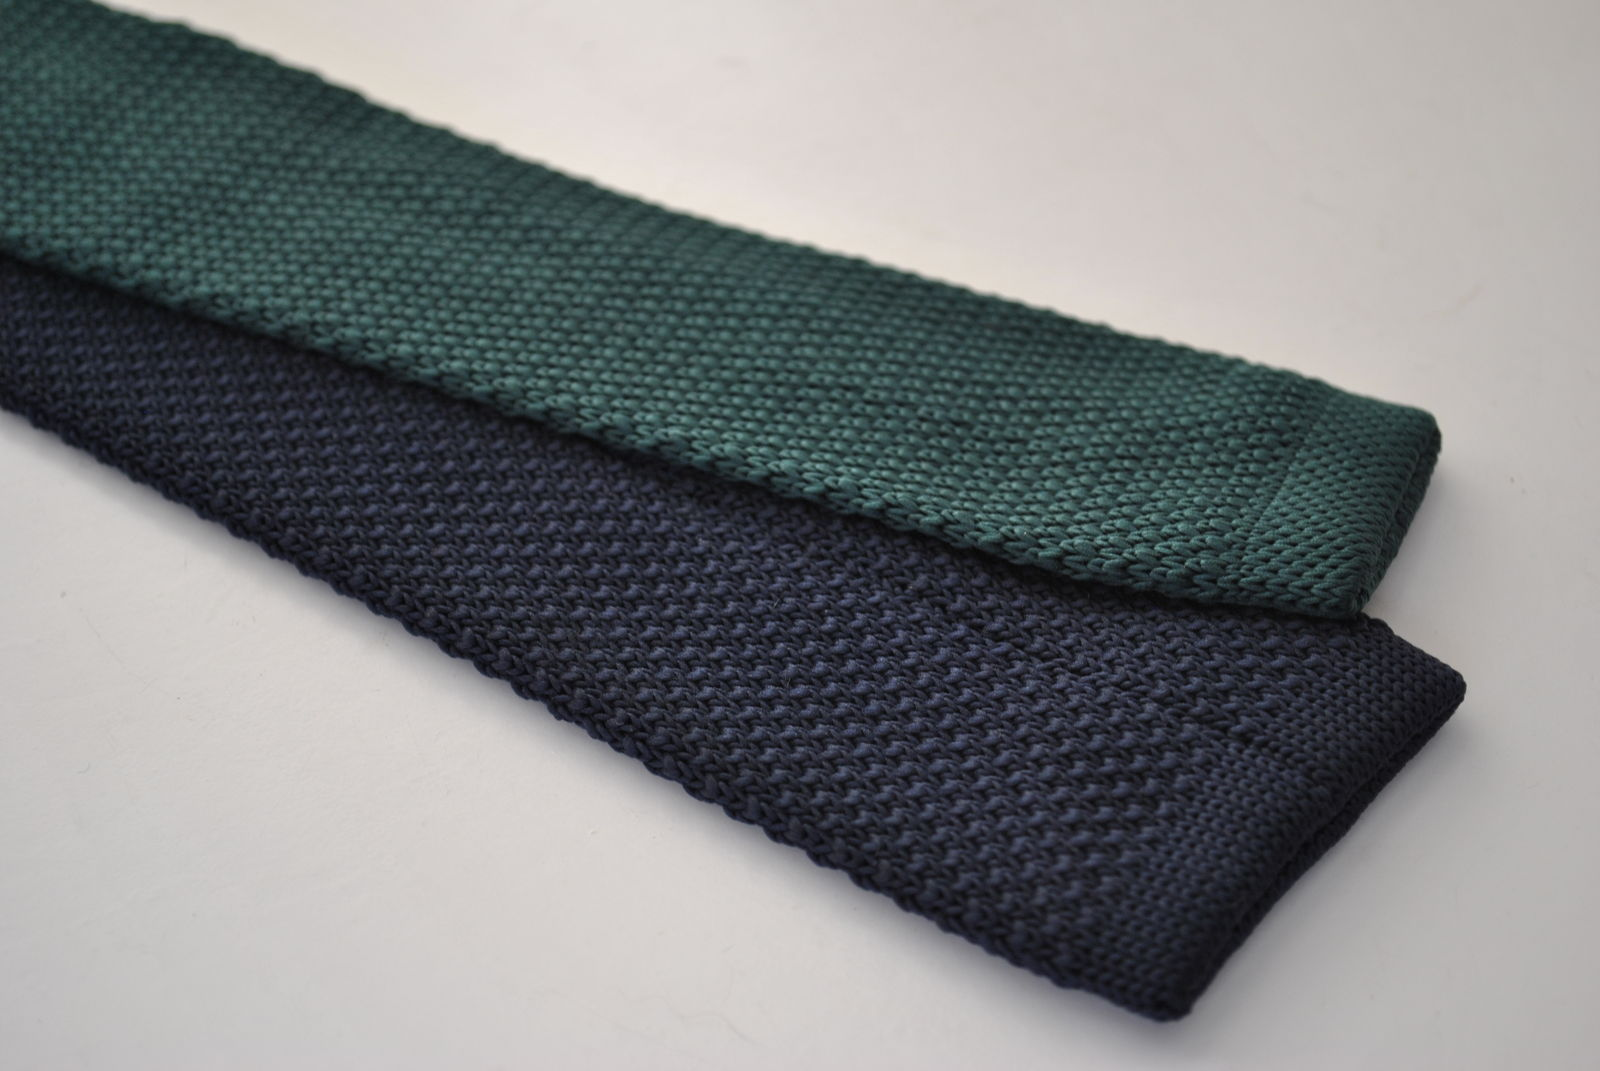 Frederick Thomas knitted navy and green spotted tie